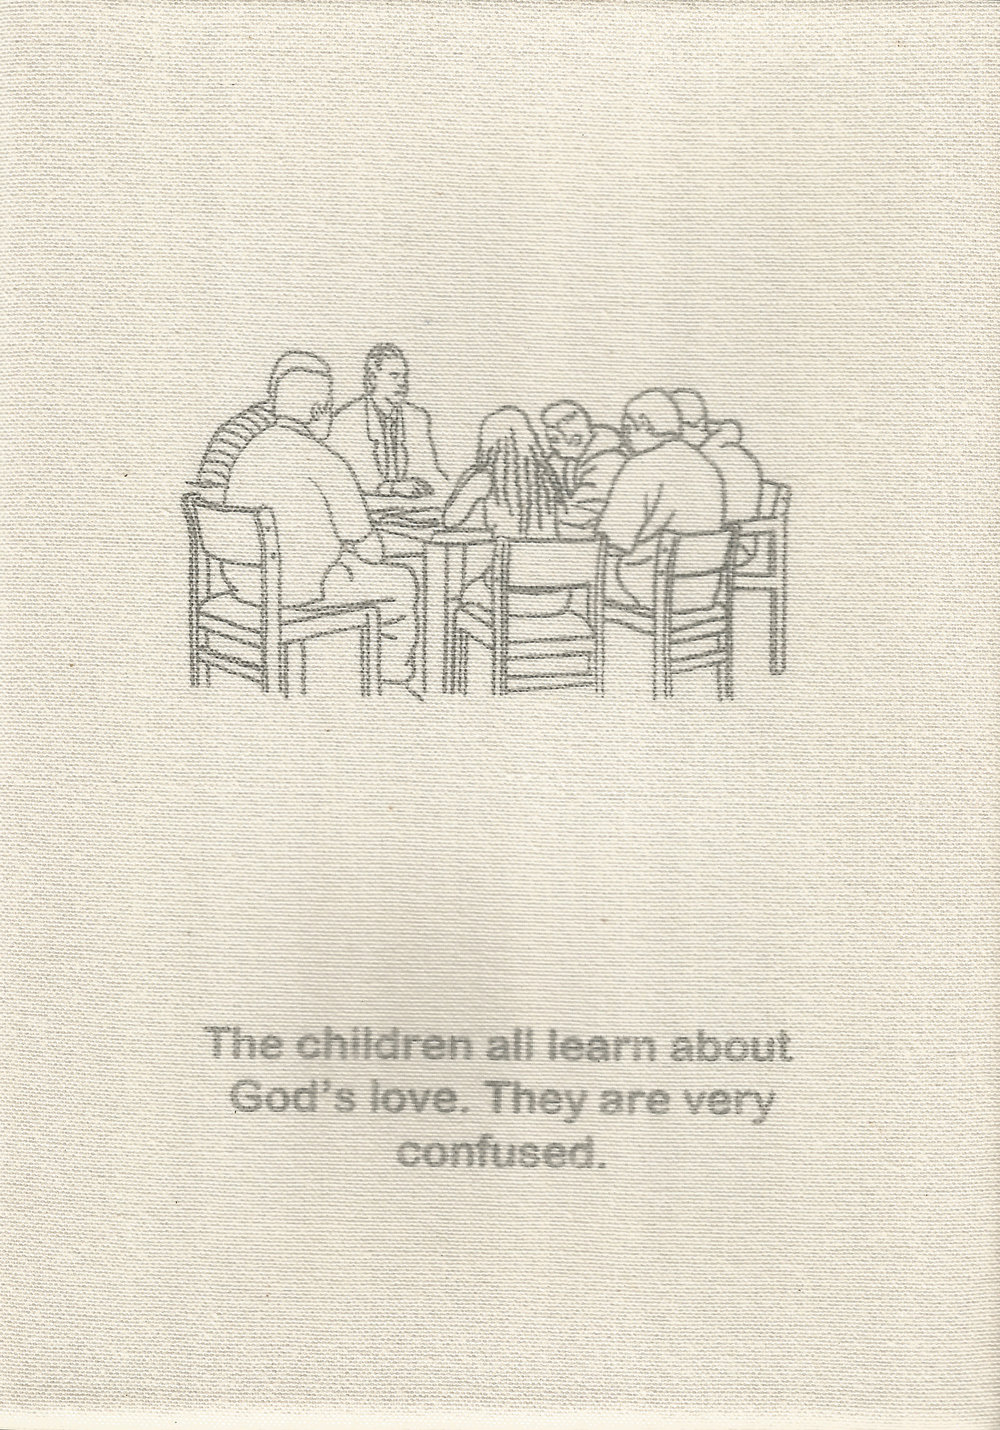 The children all learn about God's love. They are very confused.